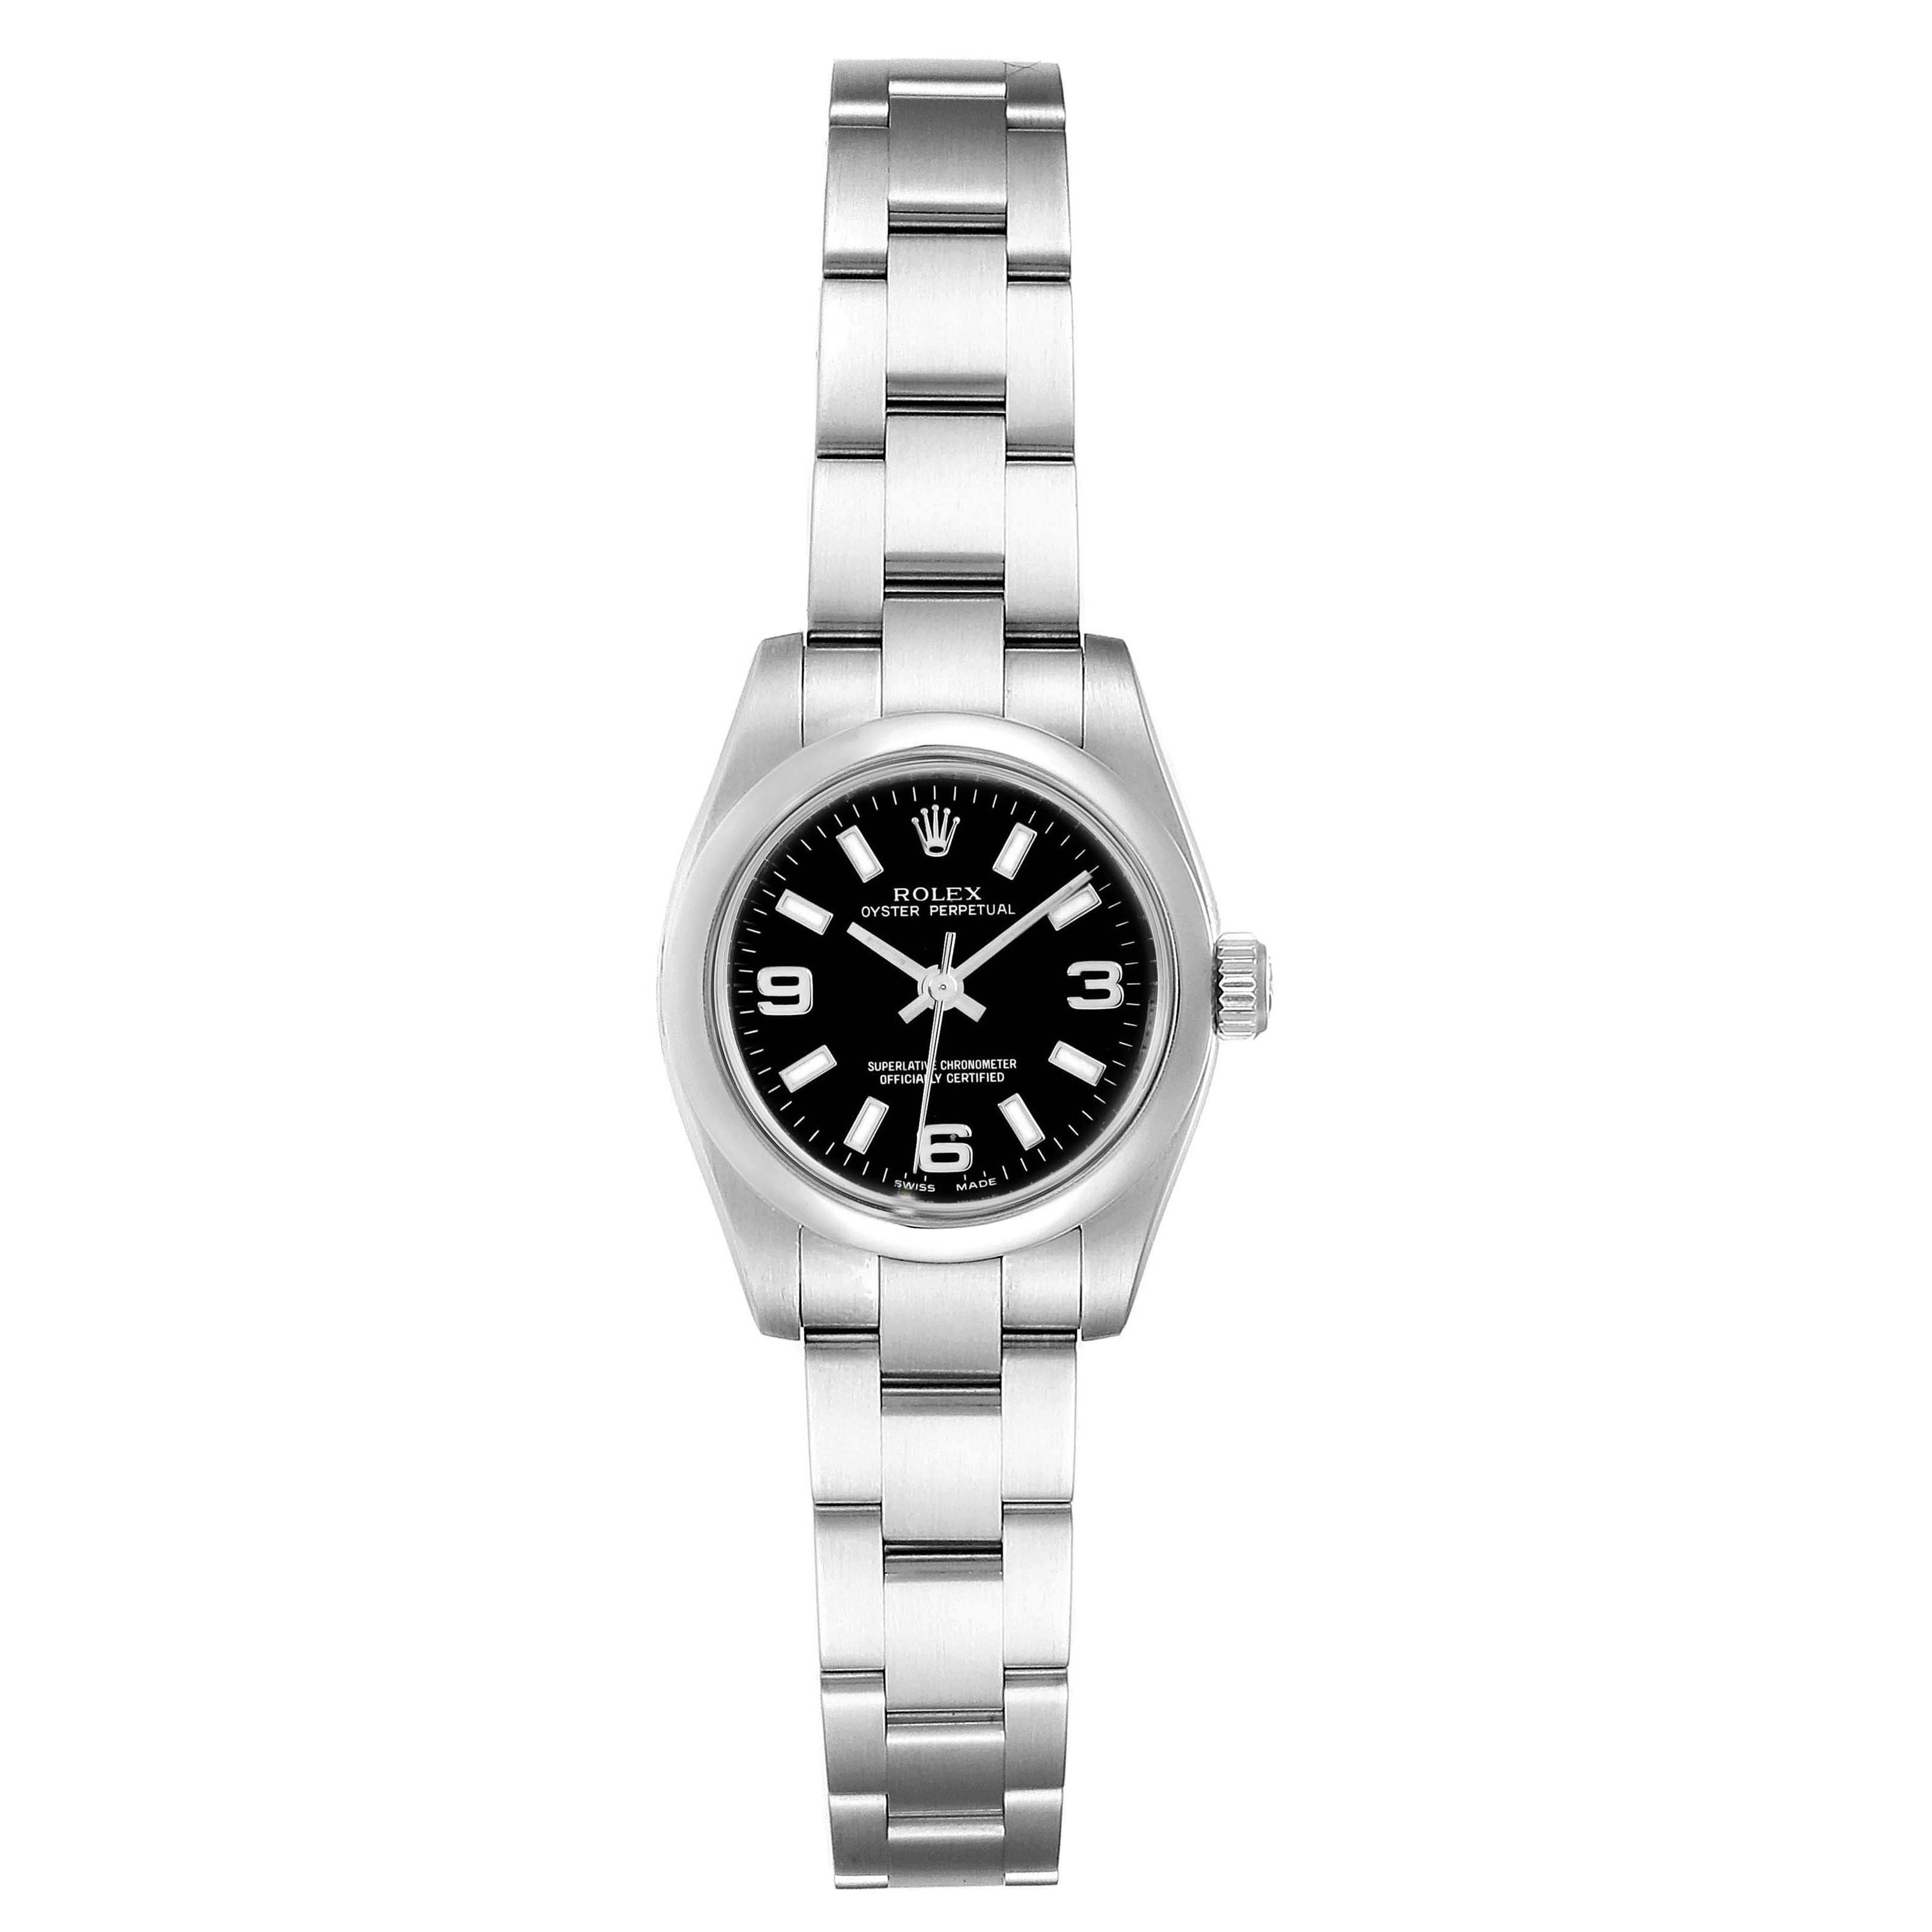 Rolex Oyster Perpetual Nondate Oyster Bracelet Ladies Watch 176200 SwissWatchExpo